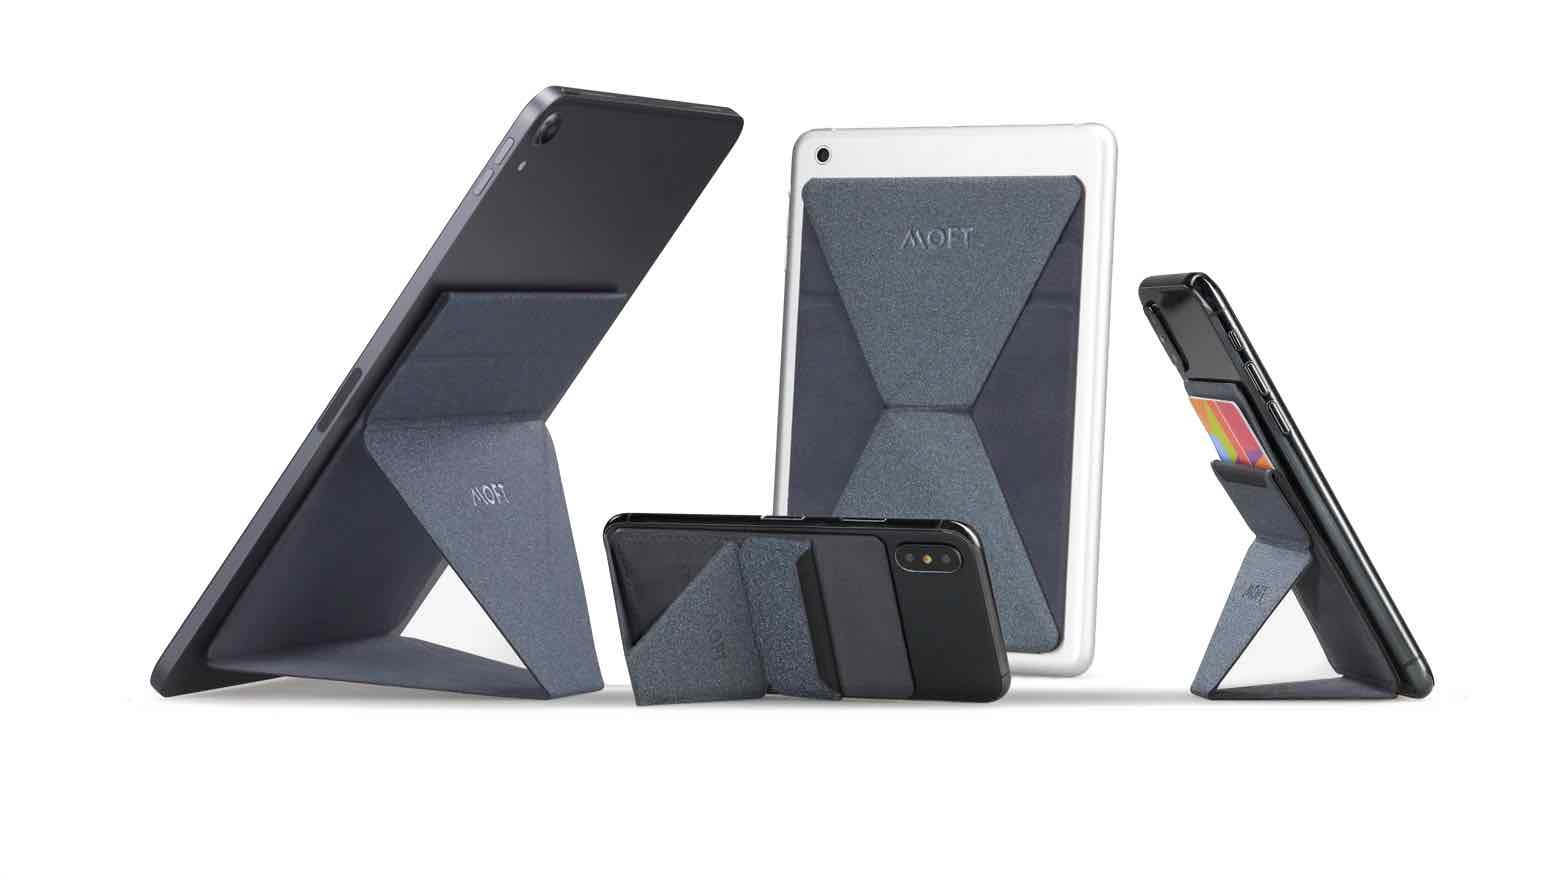 Compare the MOFT Phone Stand and tablet stand